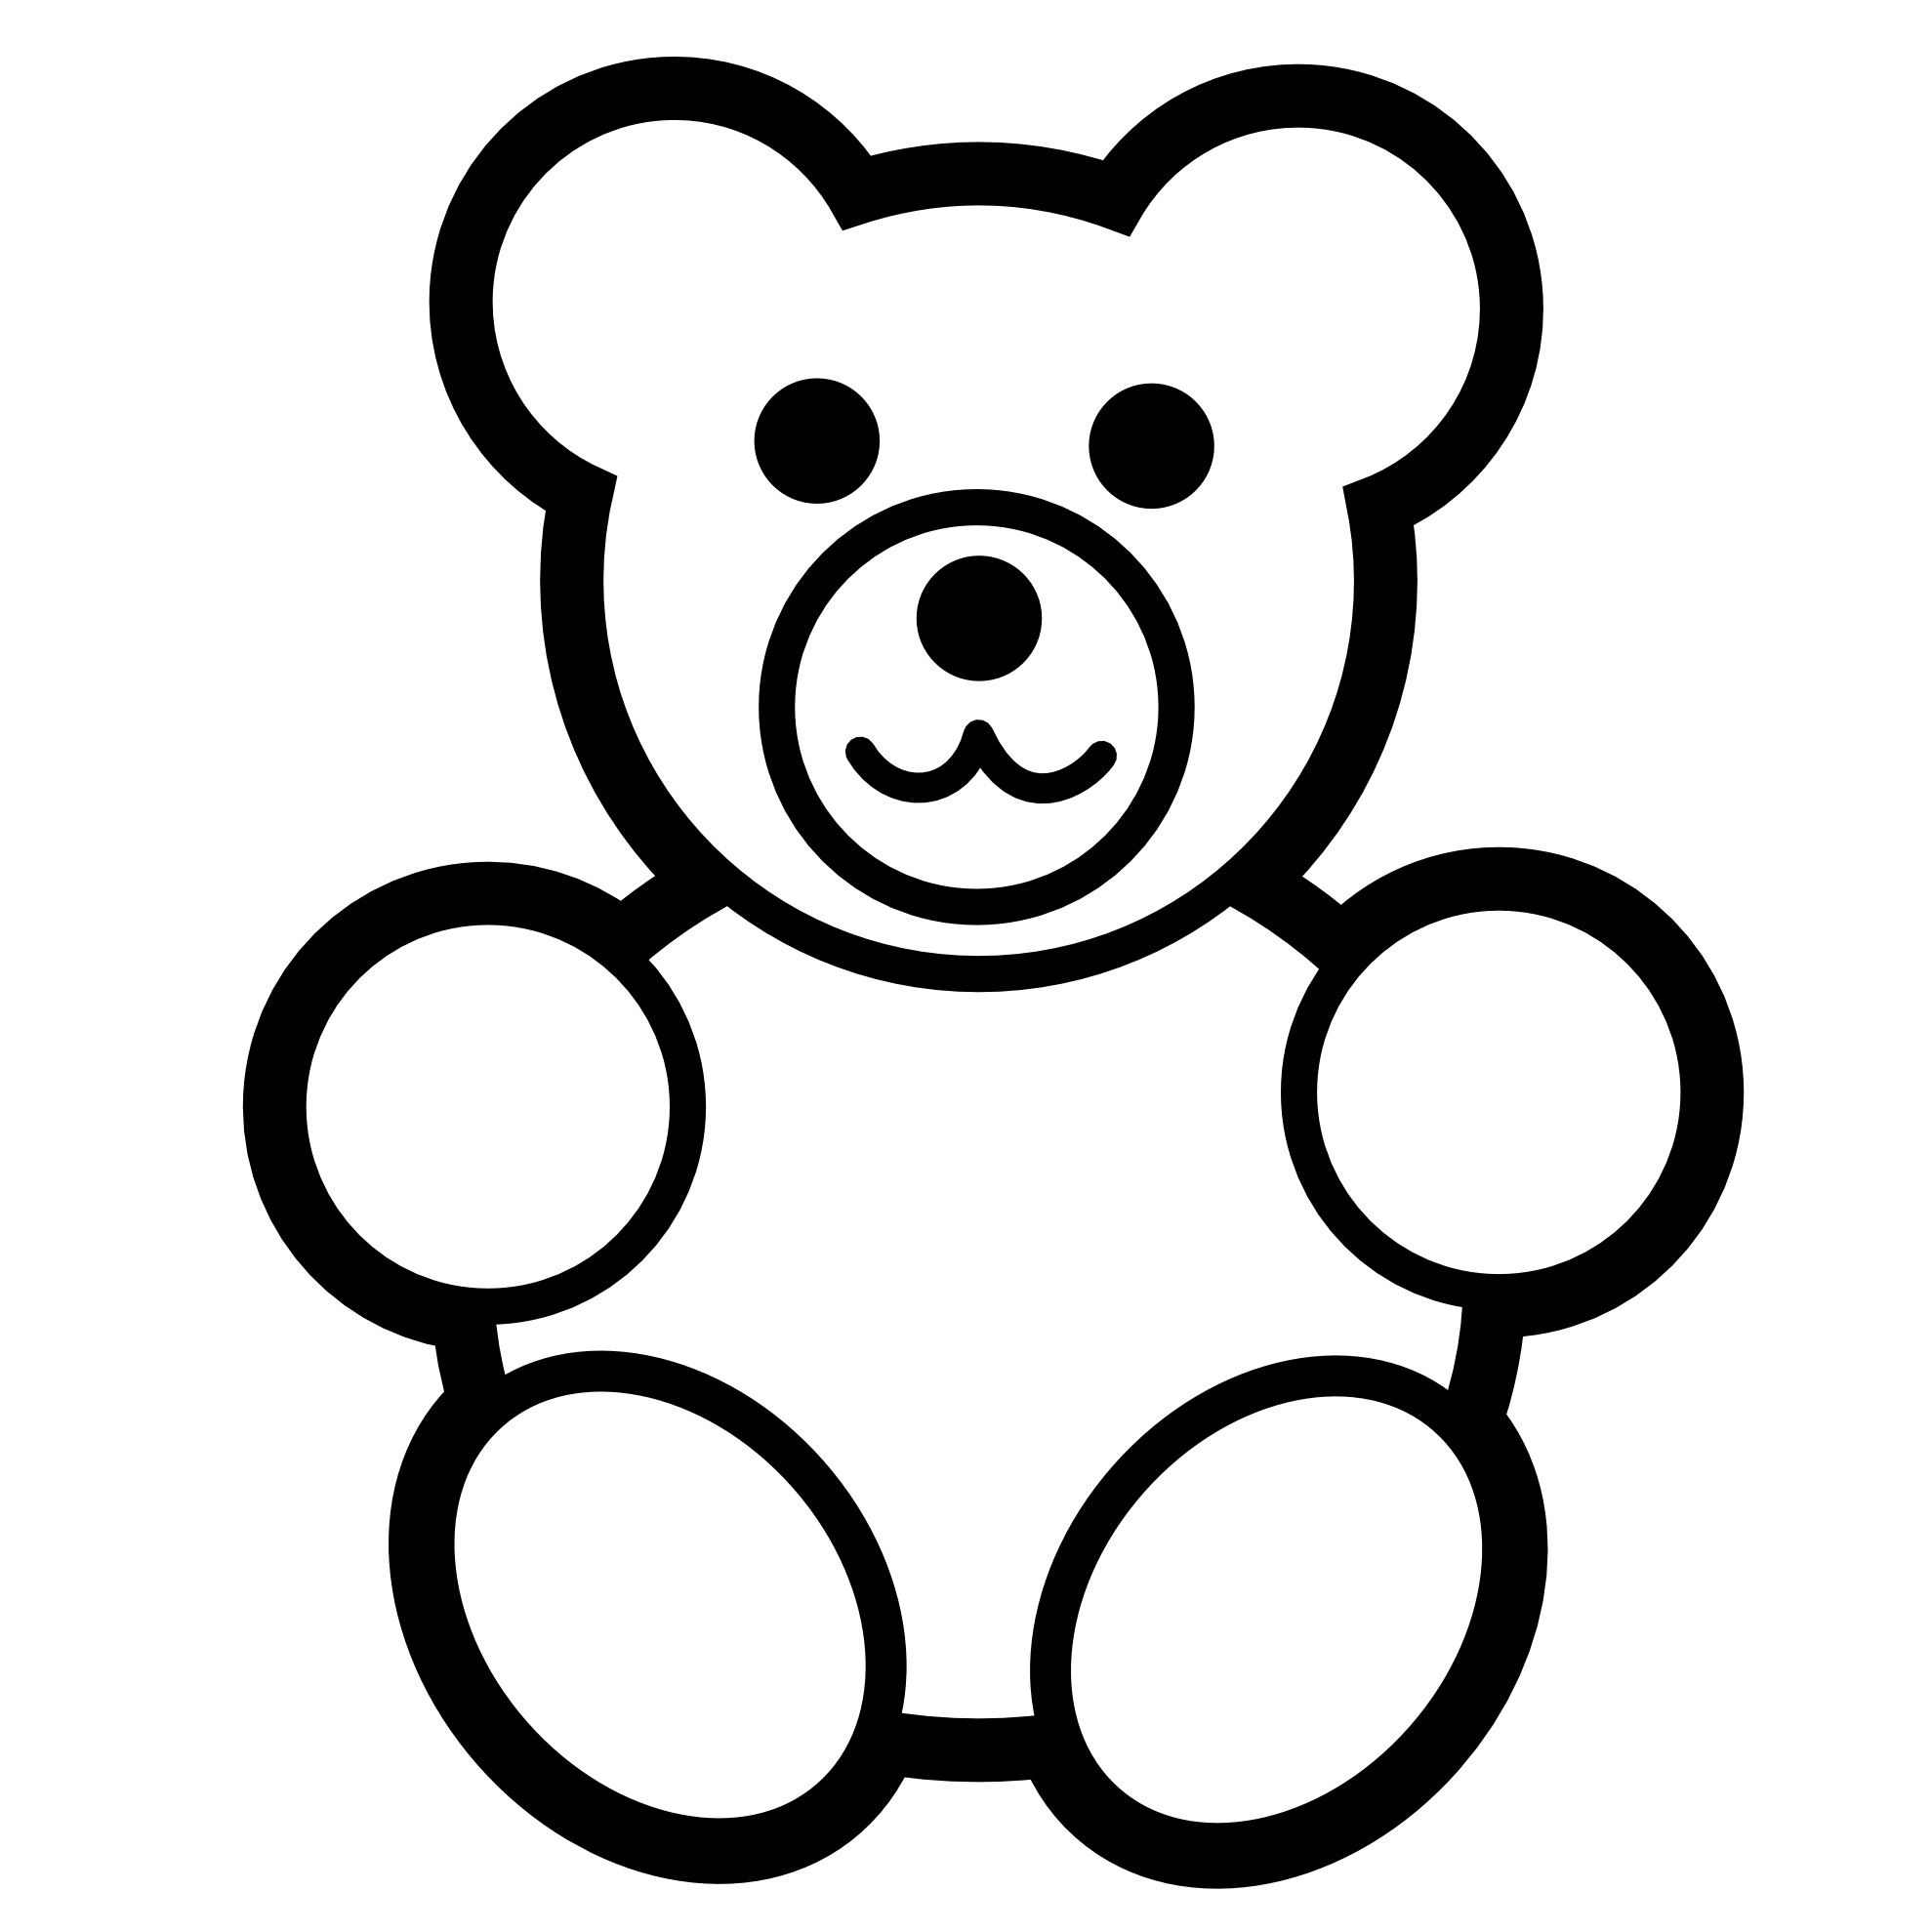 1979x1979 Authentic Teddy Bear Coloring Page Free Printa